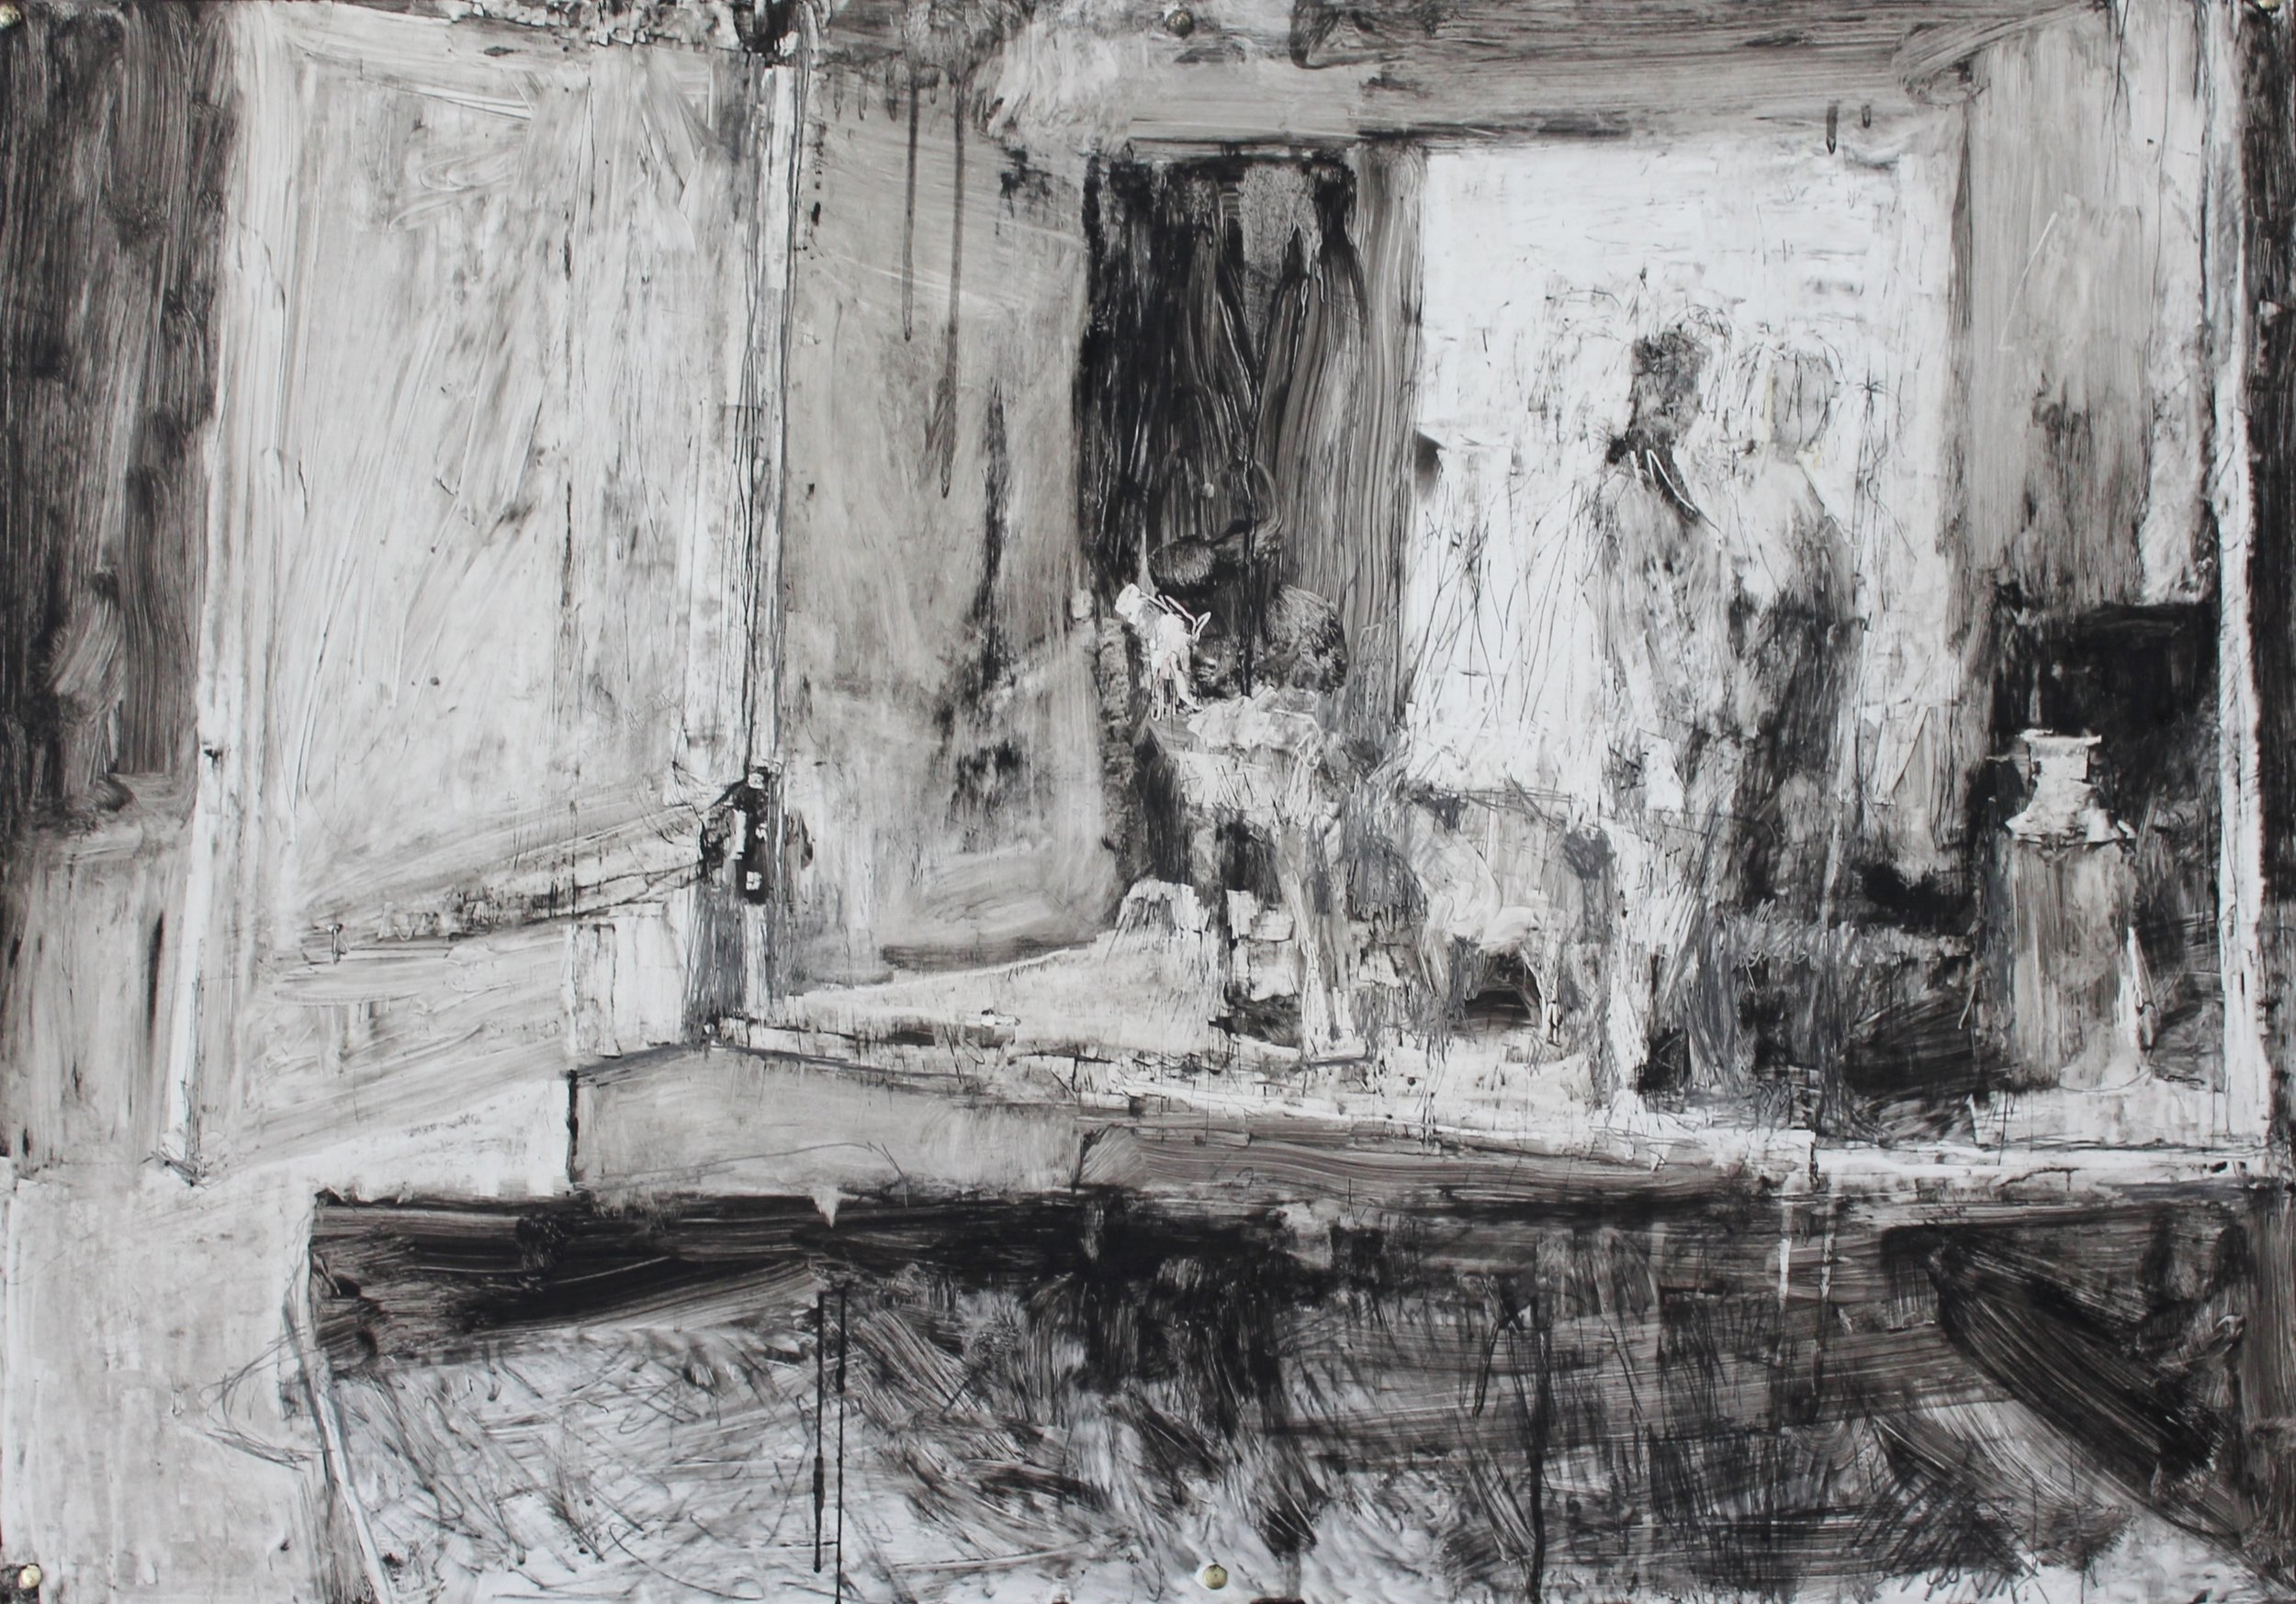 Craig Jefferson, Camel and Figure Still Life, Oilbar, graphite and soot on paper, 69cm x 100cm x 5cm,  http://www.craigjefferson.com